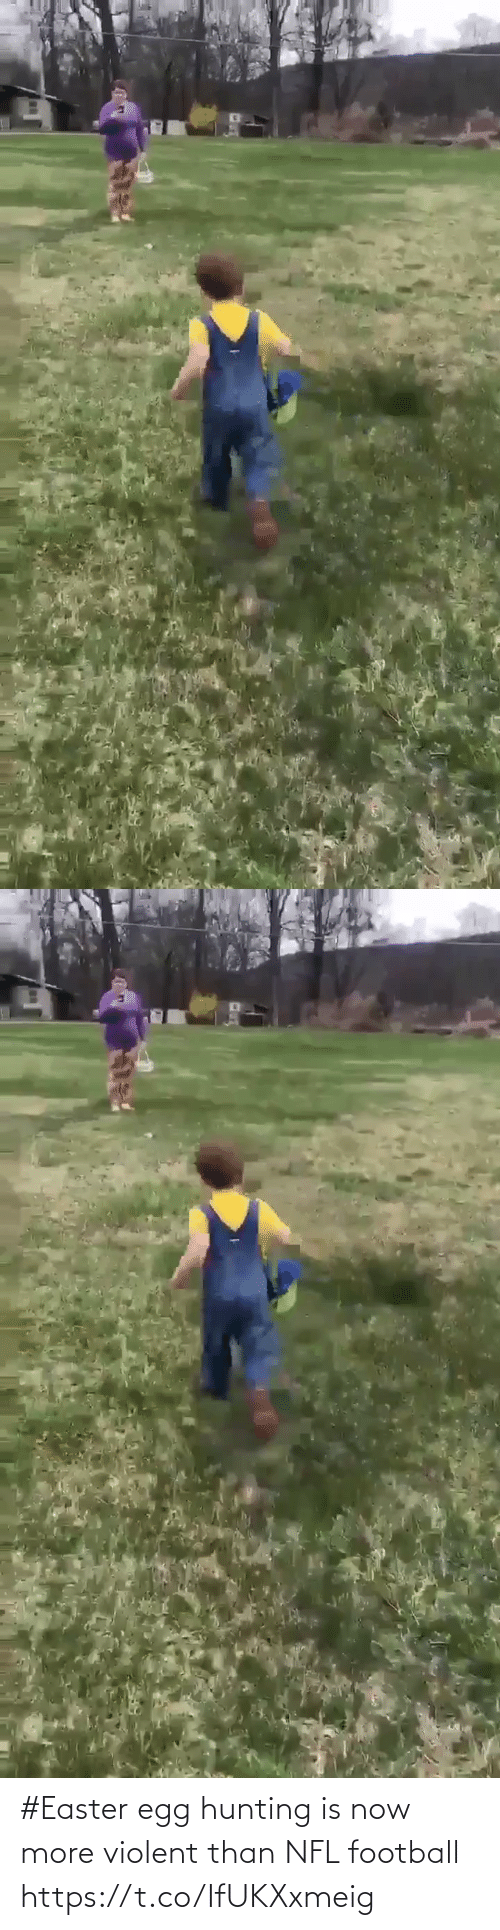 Easter: #Easter egg hunting is now more violent than NFL football https://t.co/IfUKXxmeig